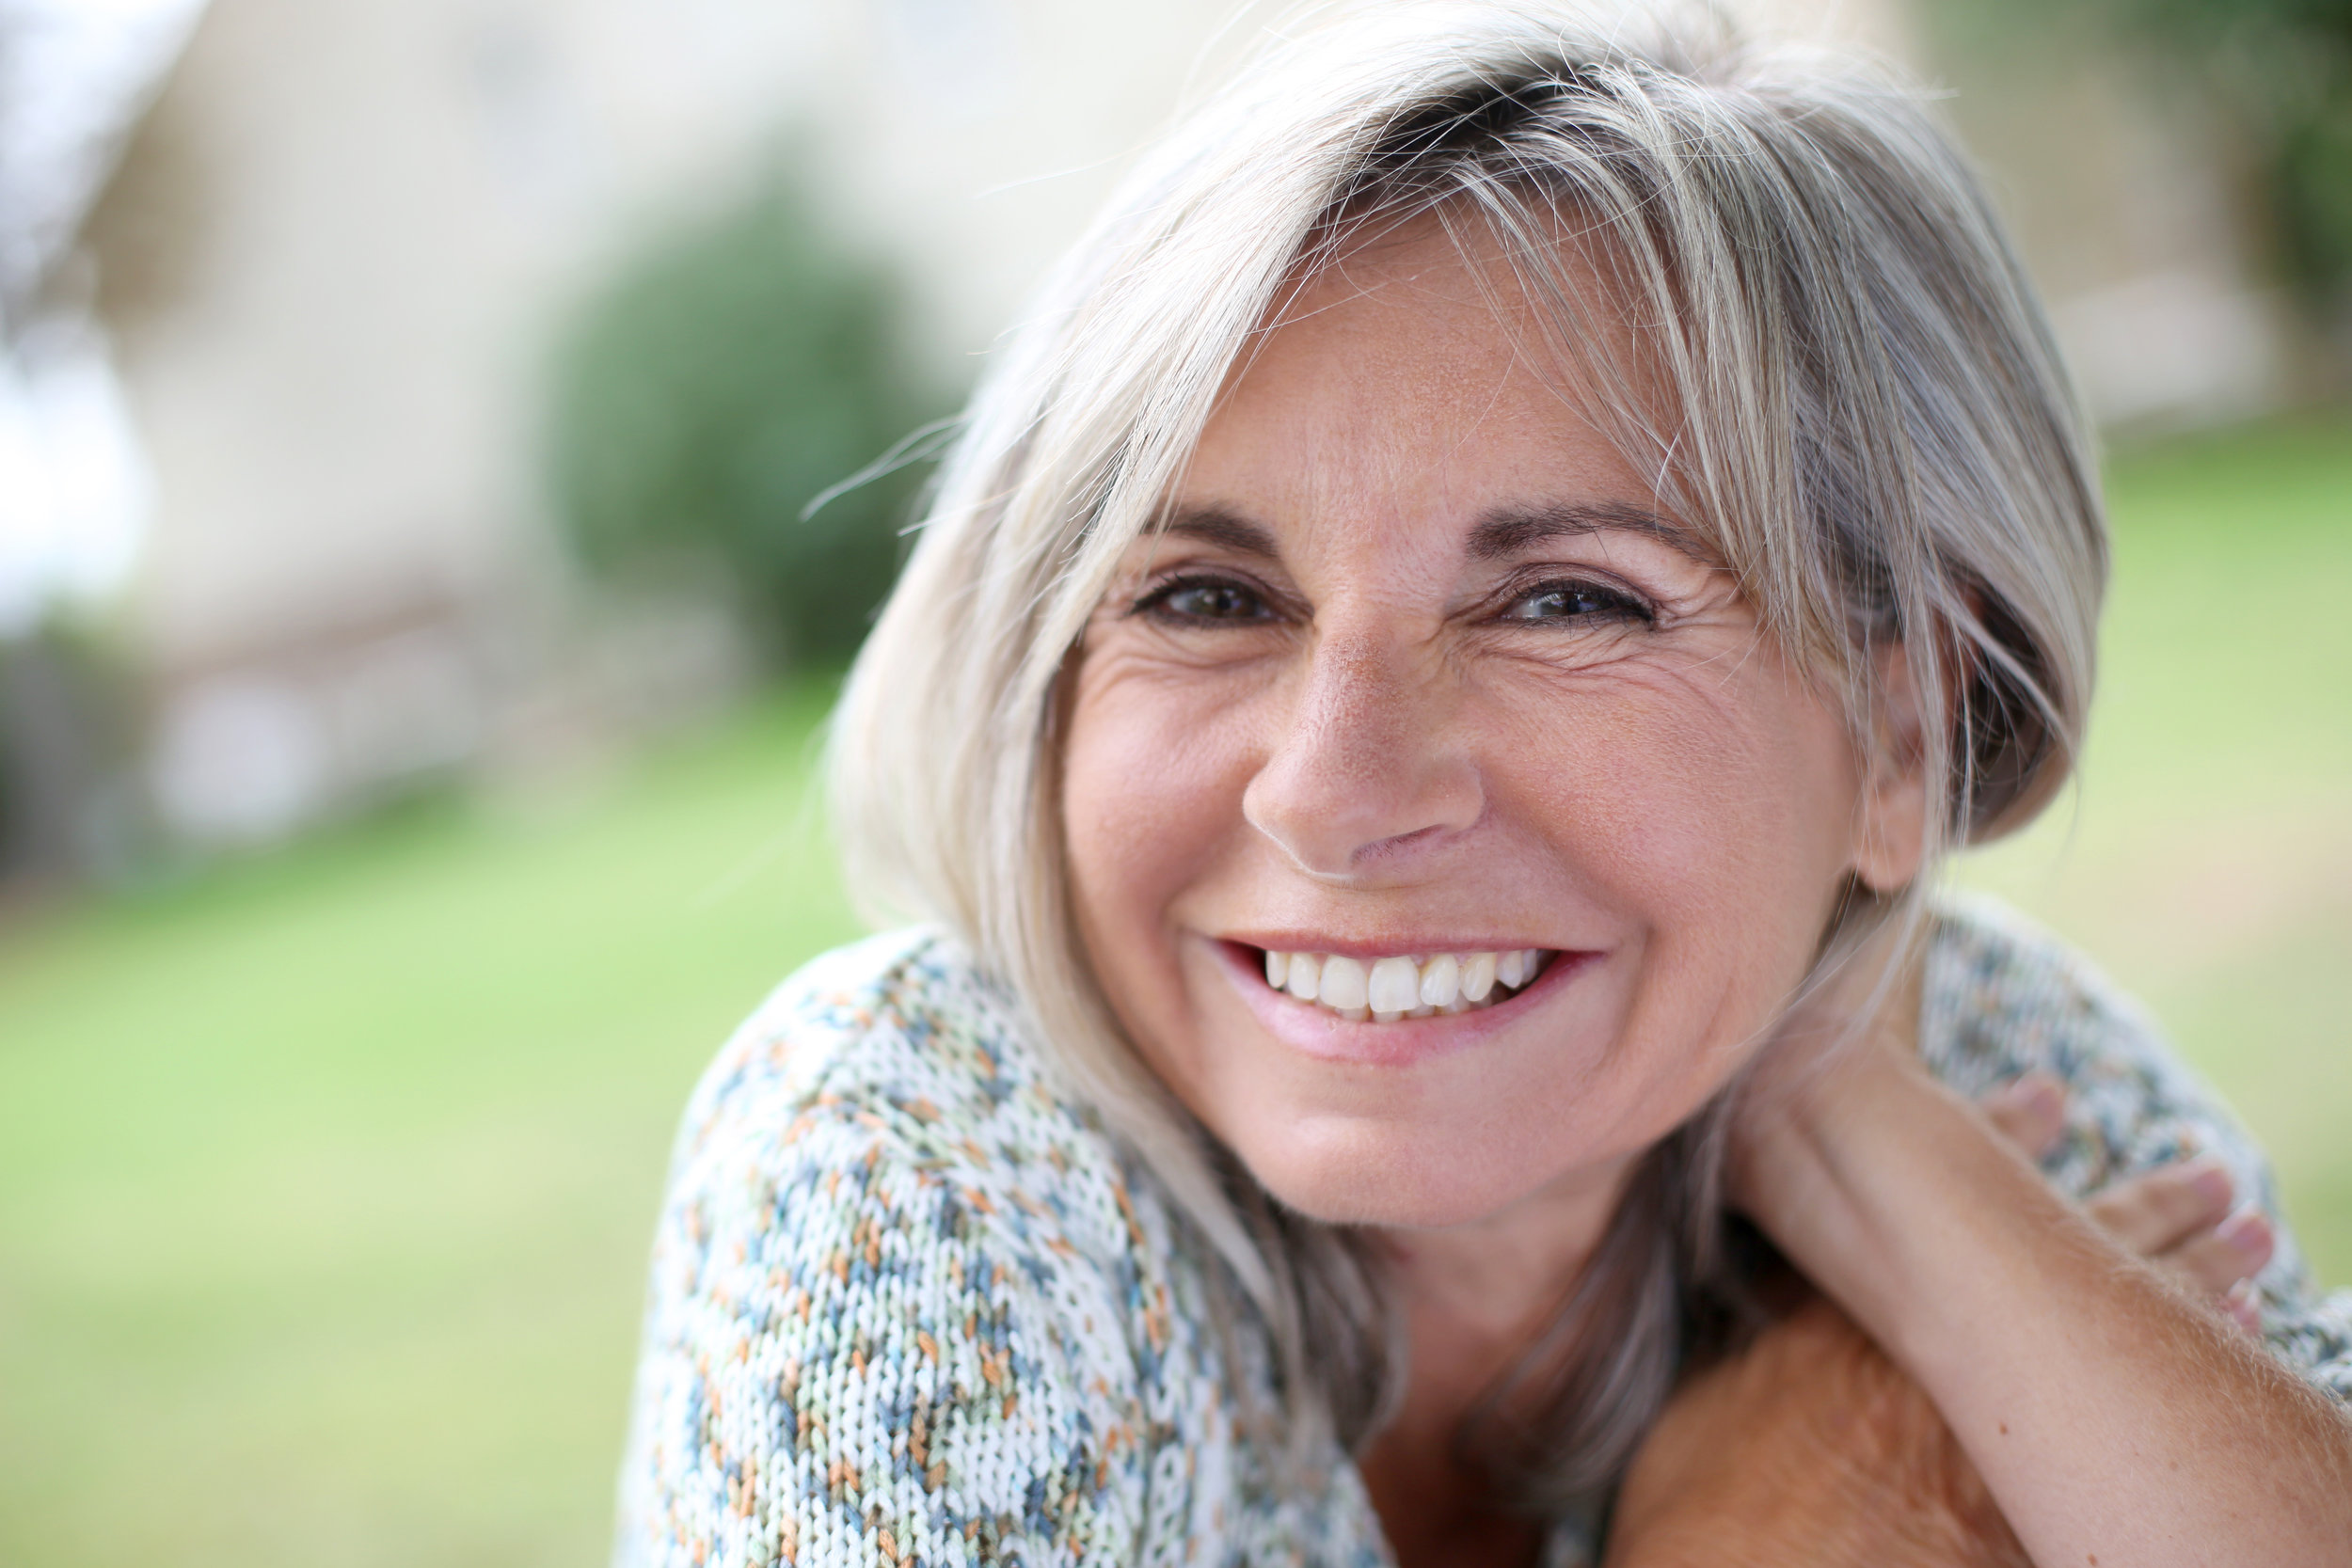 Lady in her 50s smiling after having dental crowns and veneers